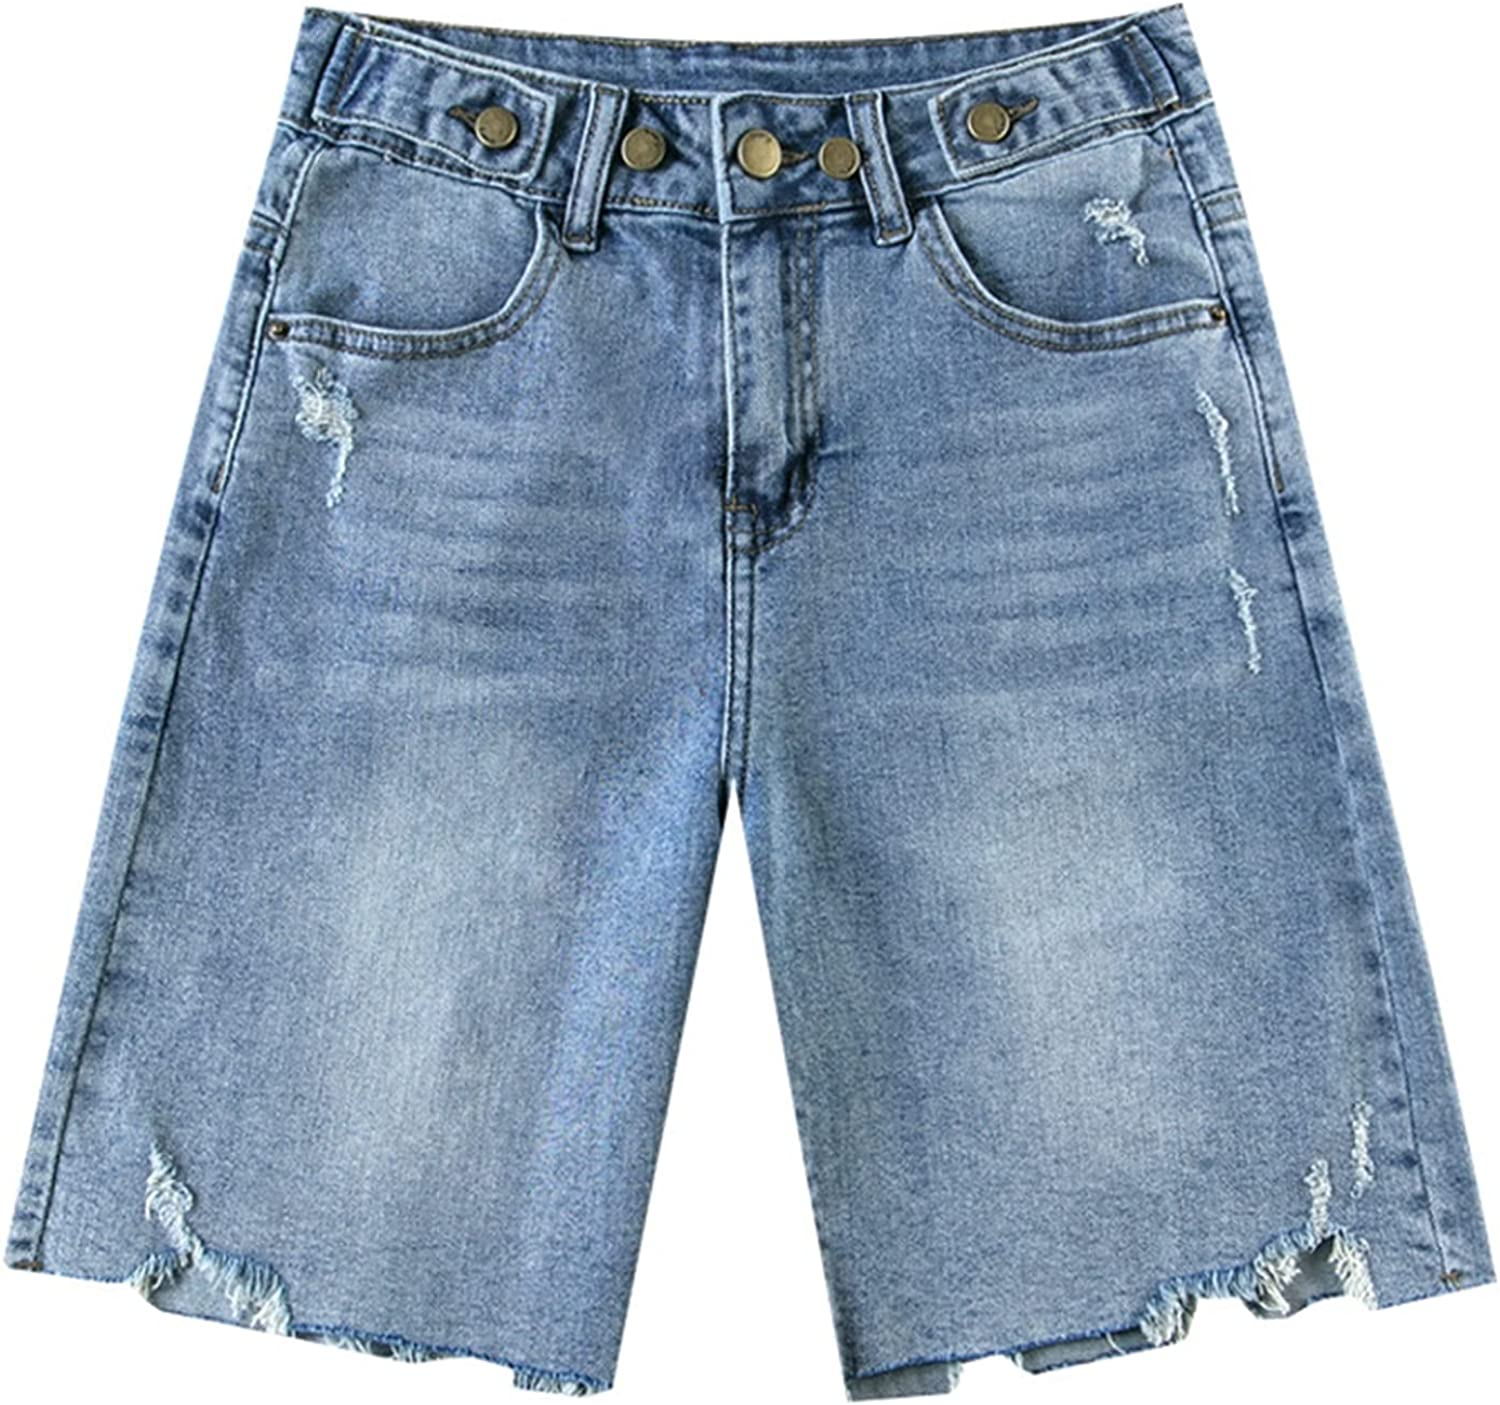 Denim Trousers for Womens Straight Skin-Friendly Leg Our shop most popular F Luxury Thin